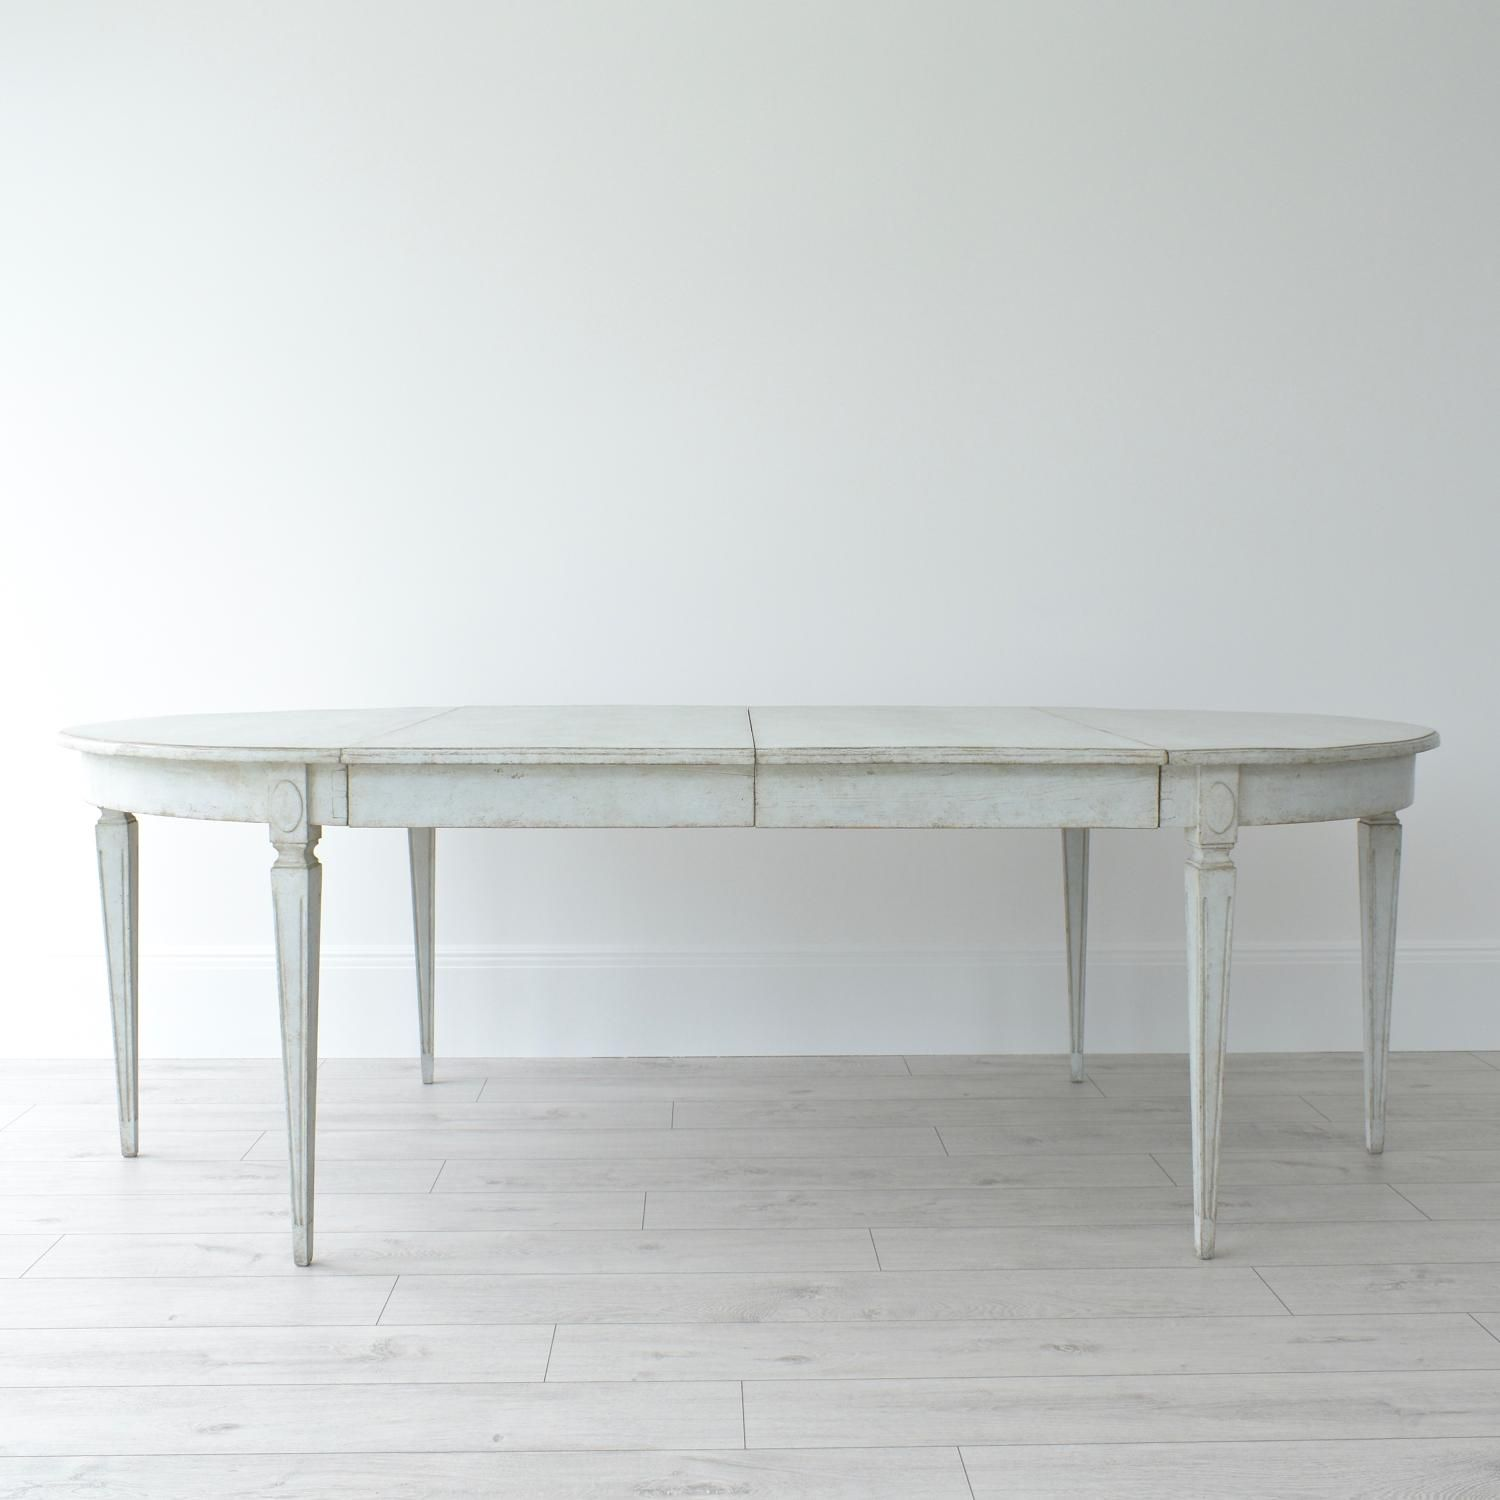 Magnificent Swedish Gustavian Dining Table In Furniture Swedish Furniture Gustavian Furniture Furniture